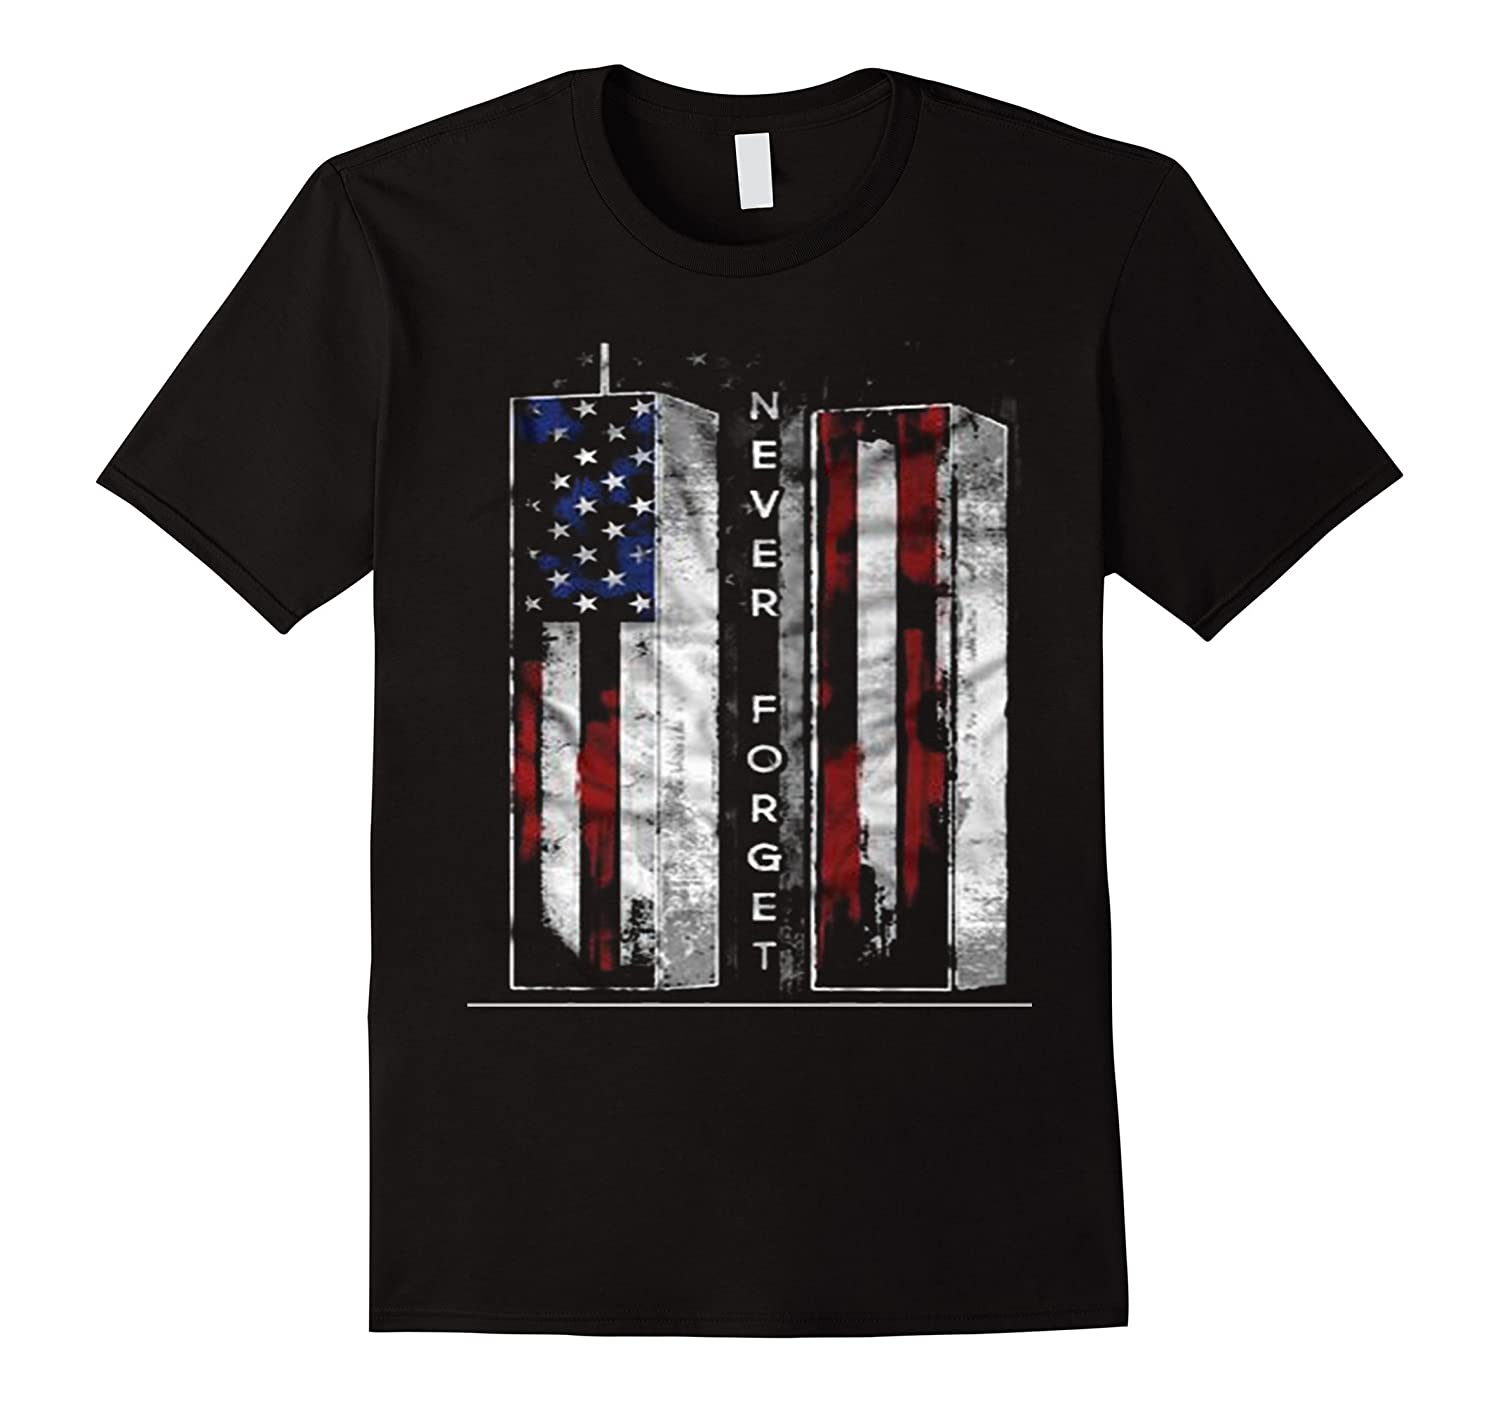 September 11th - NEVER FORGET shirt-CL